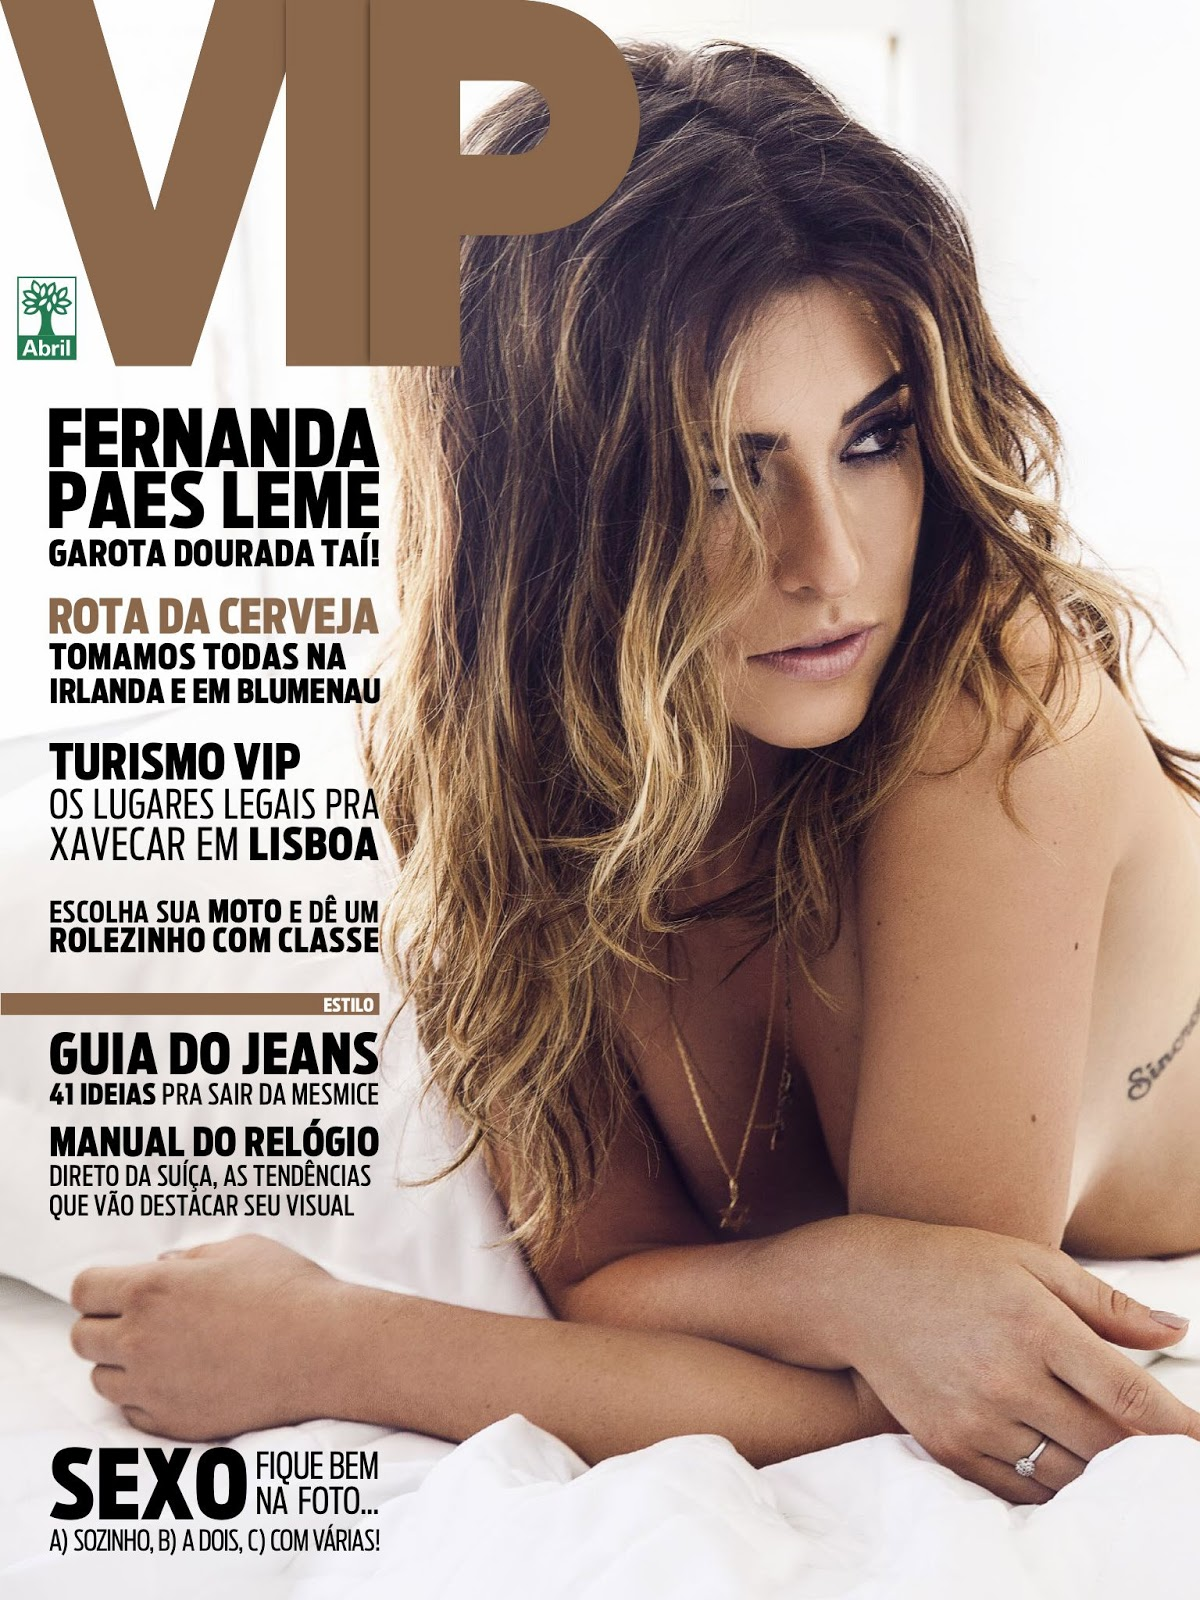 001 Download   Fernanda Paes Leme : Revista Vip   Maio 2014 (Completa)